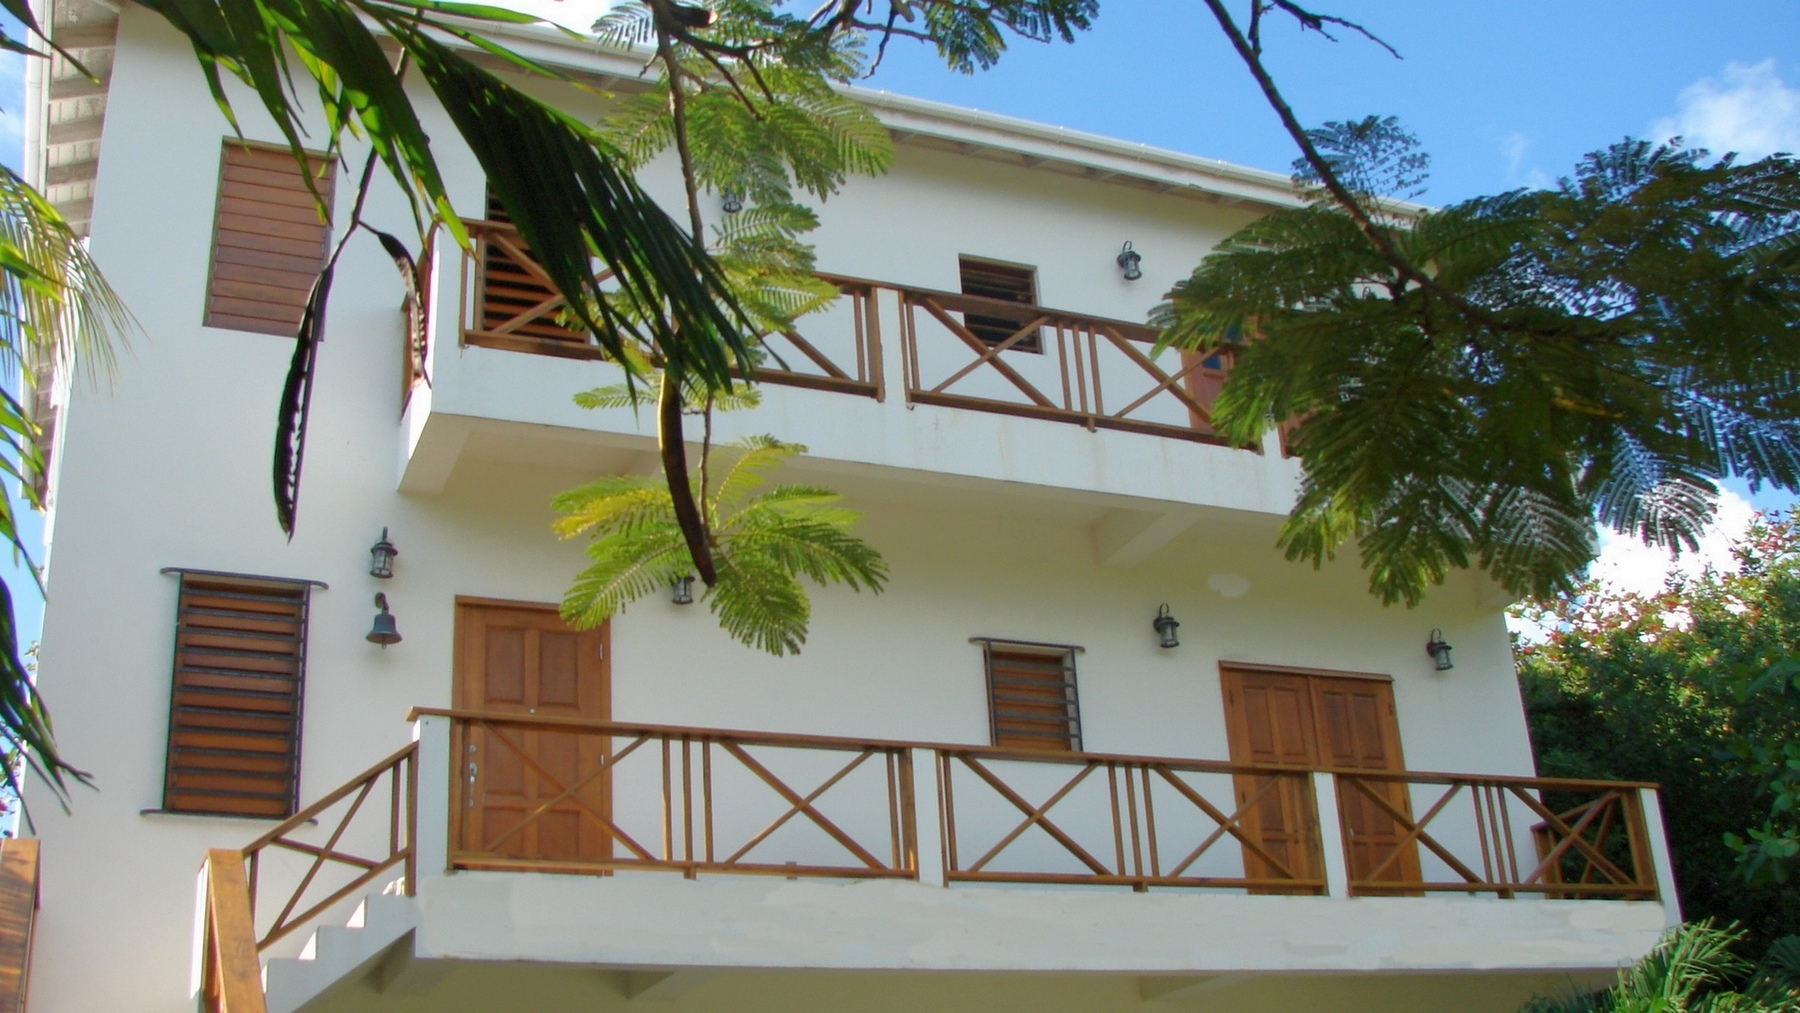 Single Family Home for Sale at Custom Home San Pedro Town, Ambergris Caye, Belize